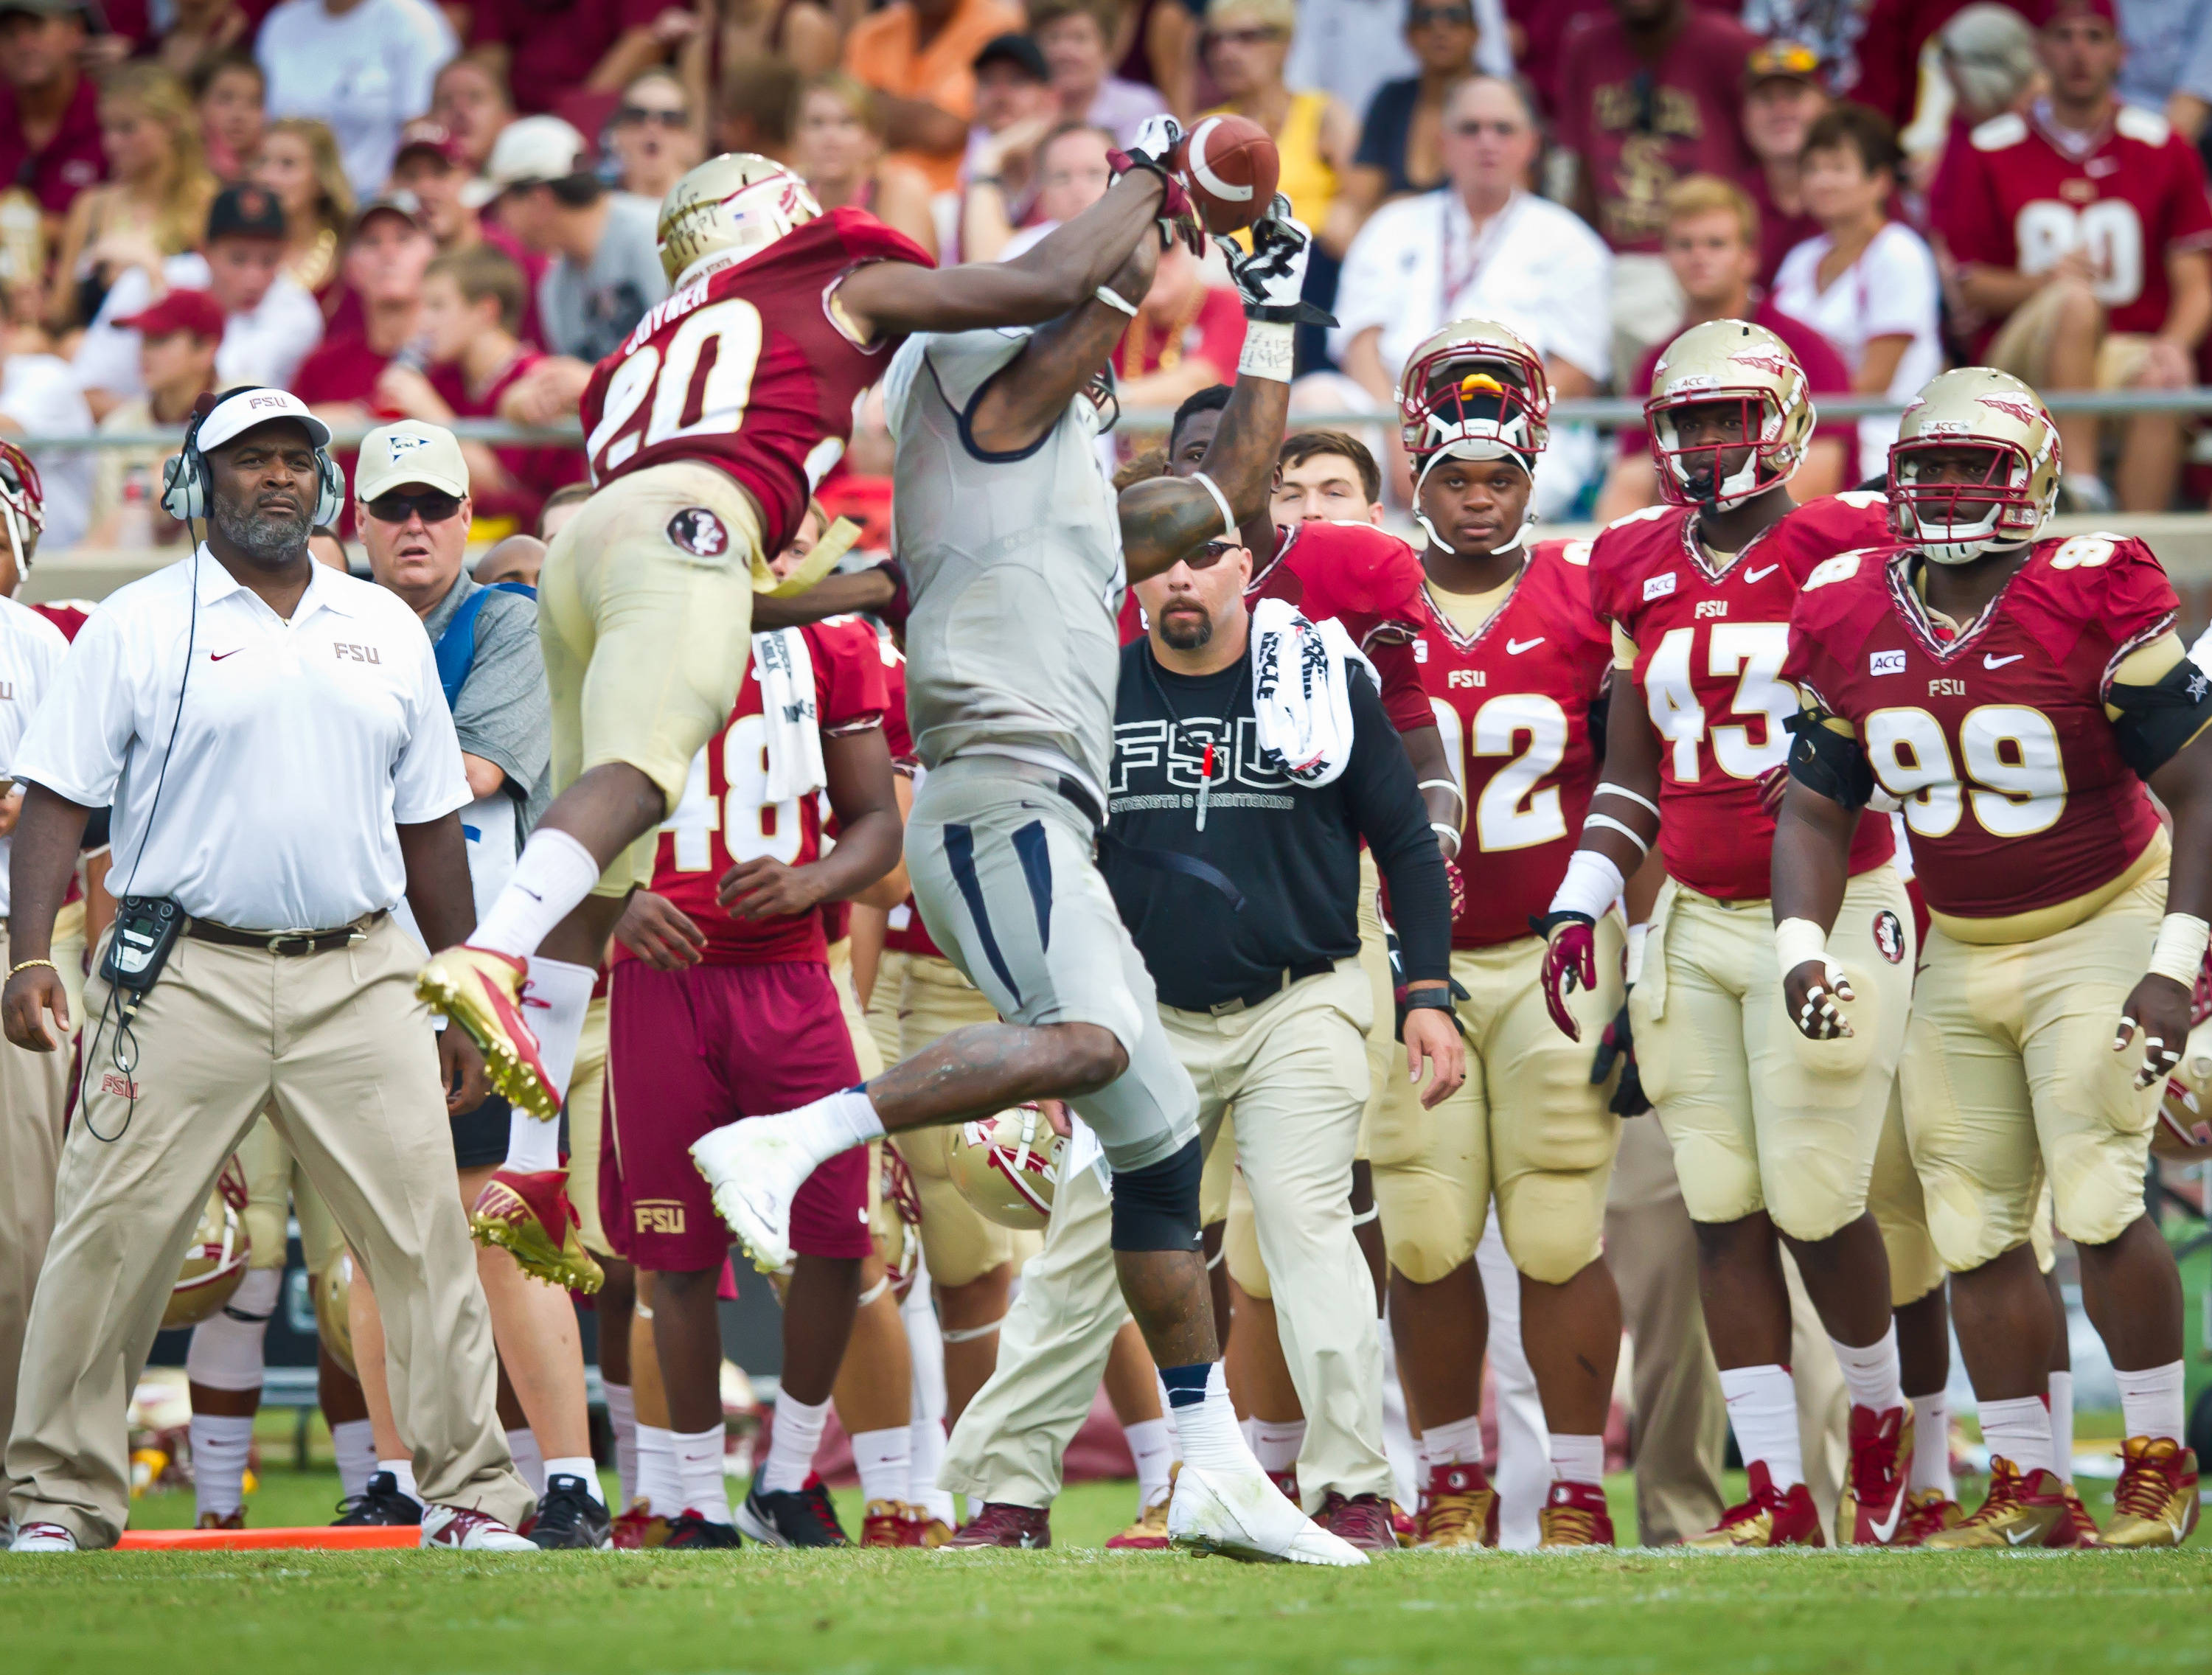 Lamarcus Joyner (20) breaks up a pass in front of the FSU bench.